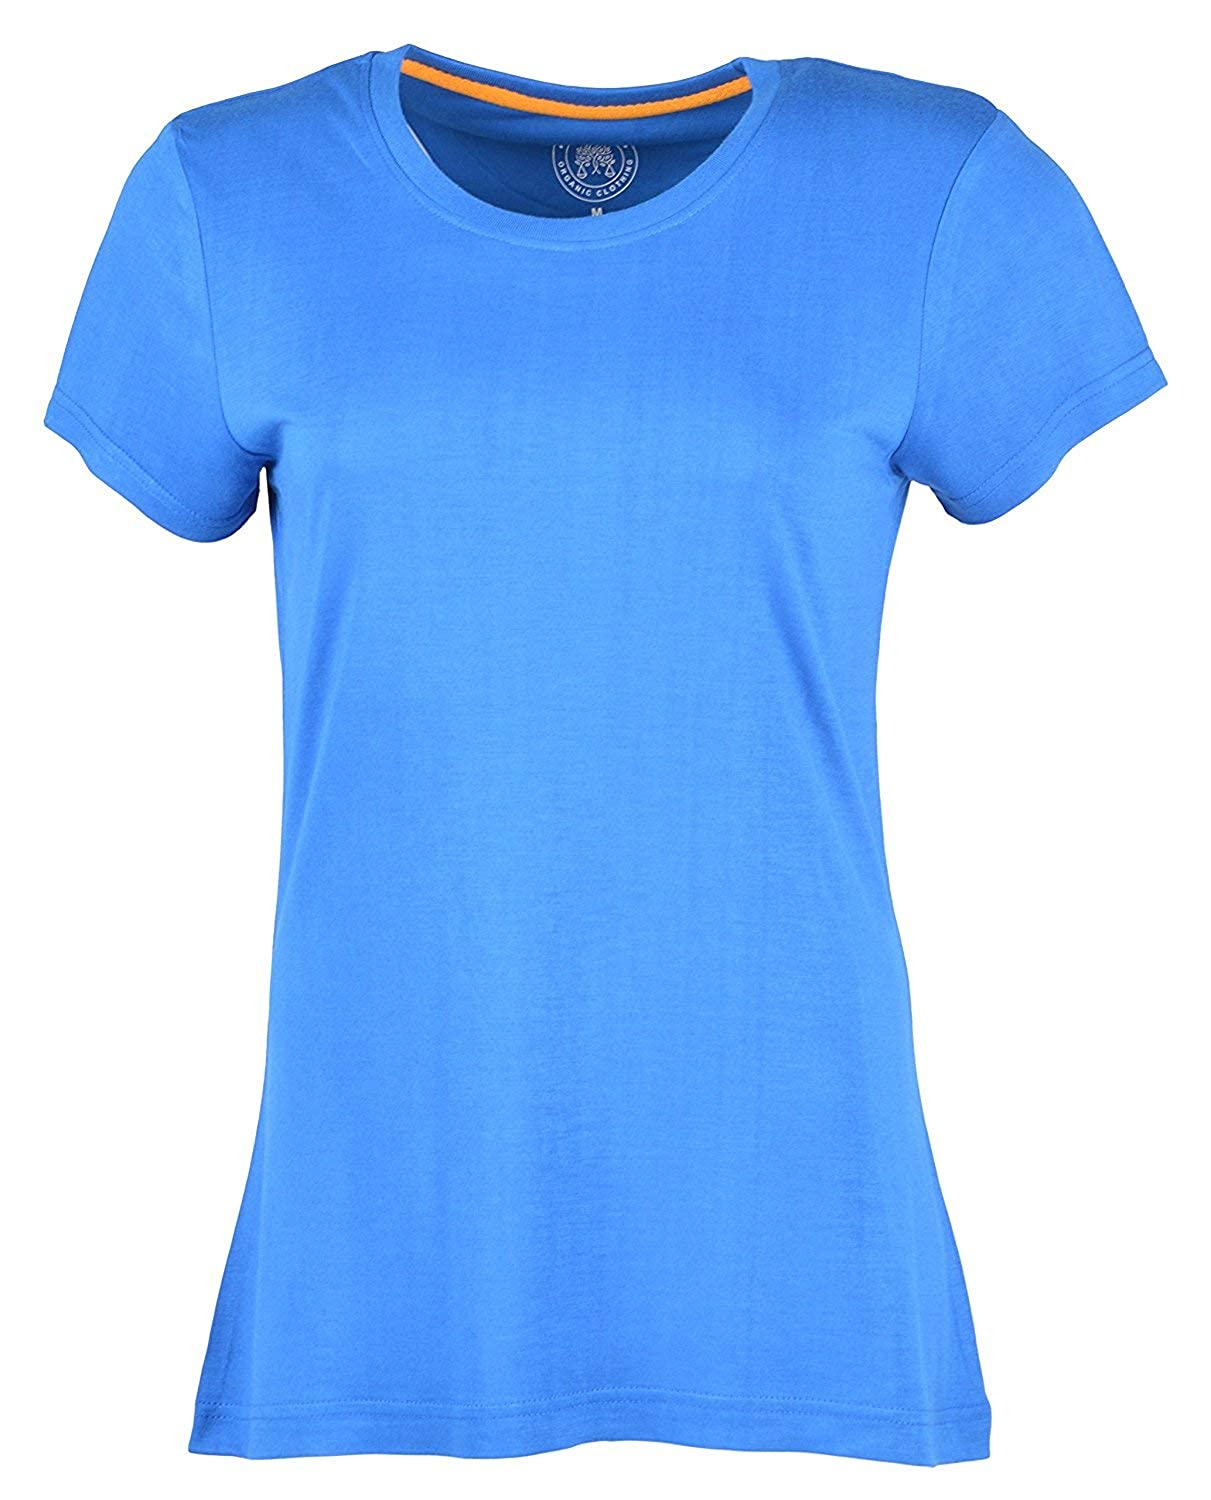 Woodwose Organic Clothing Bamboo Womens T-Shirt porewit clothing private limited